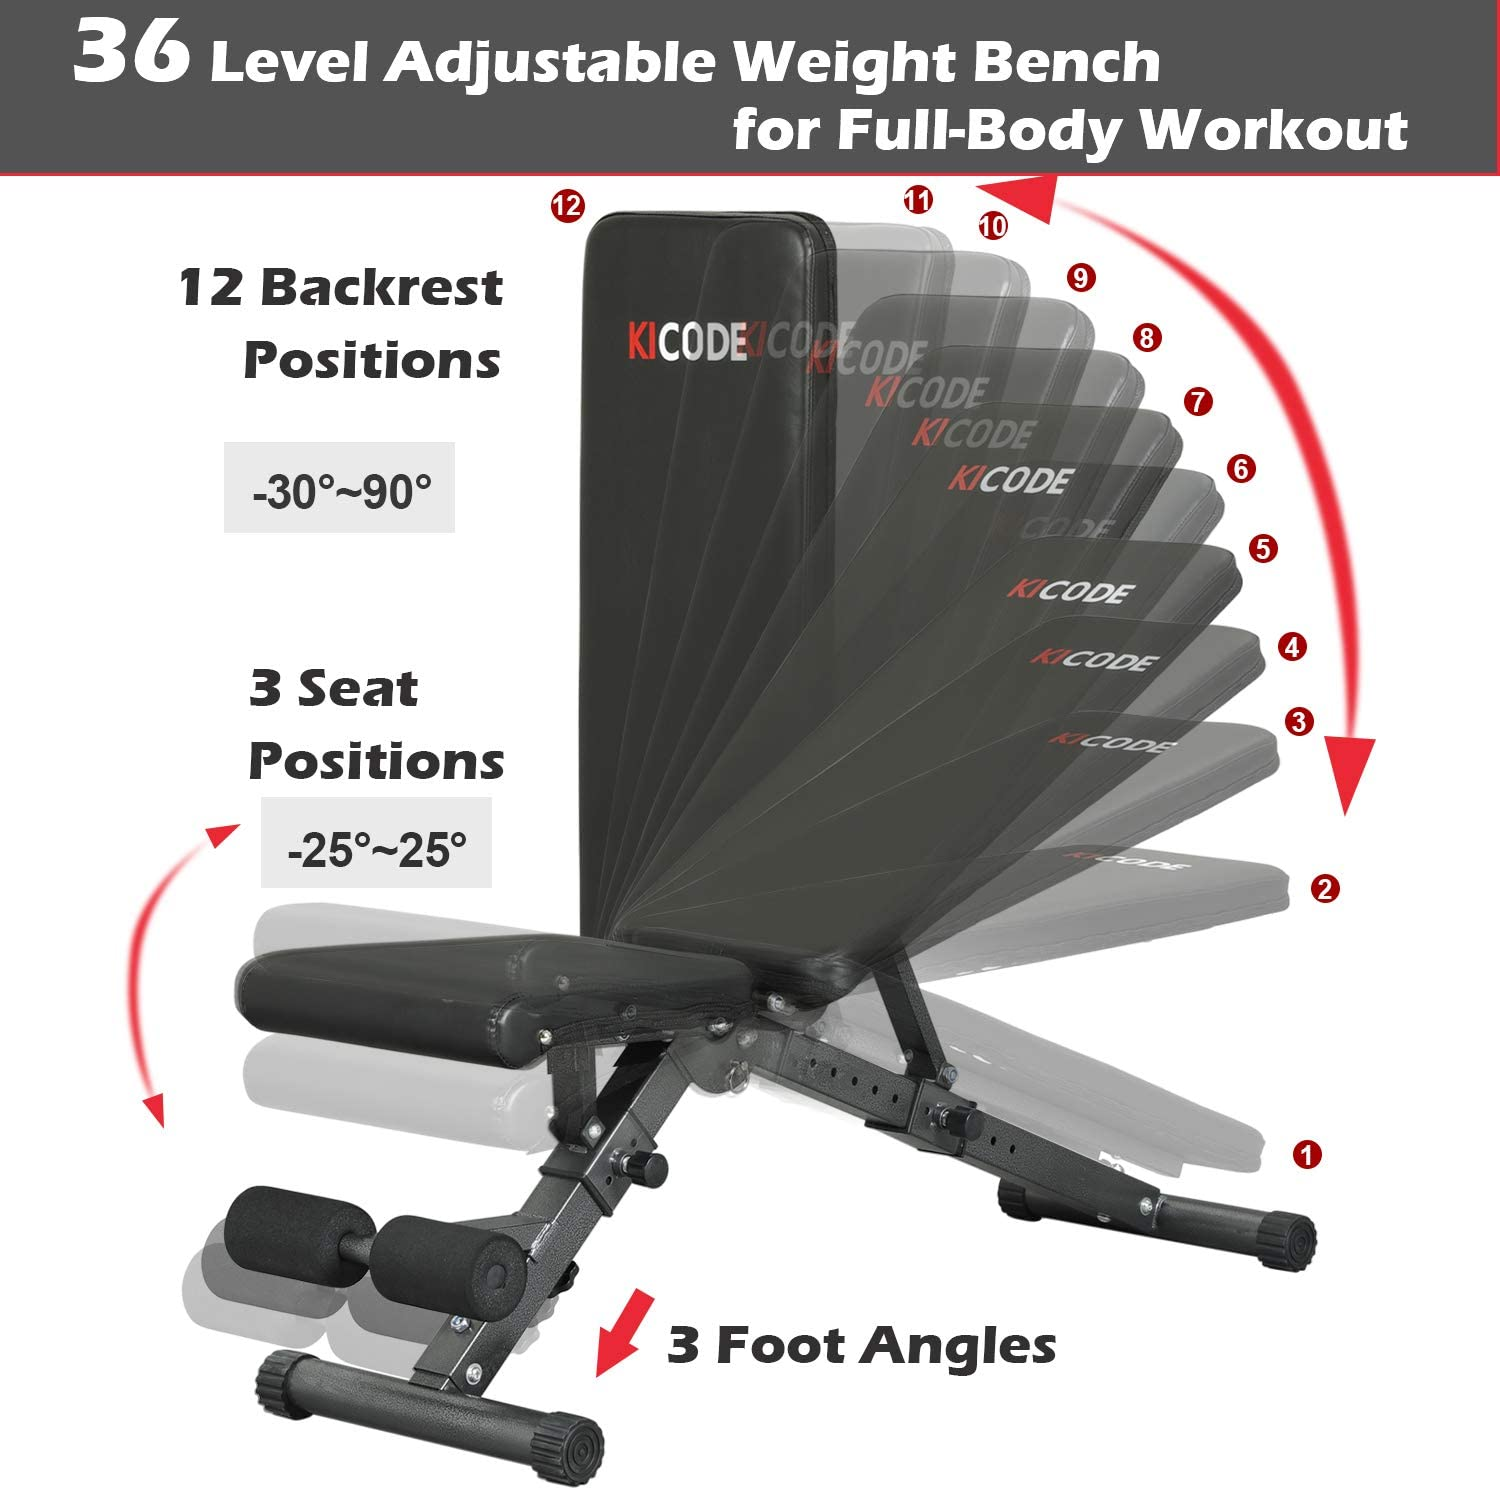 Workout Bench Foldable Incline Decline Flat Exercise Fitness Folding Weight Benches for Home Gym Exercises Adjustable Weight Bench 12+3+3 Positions for Full Body Exercise